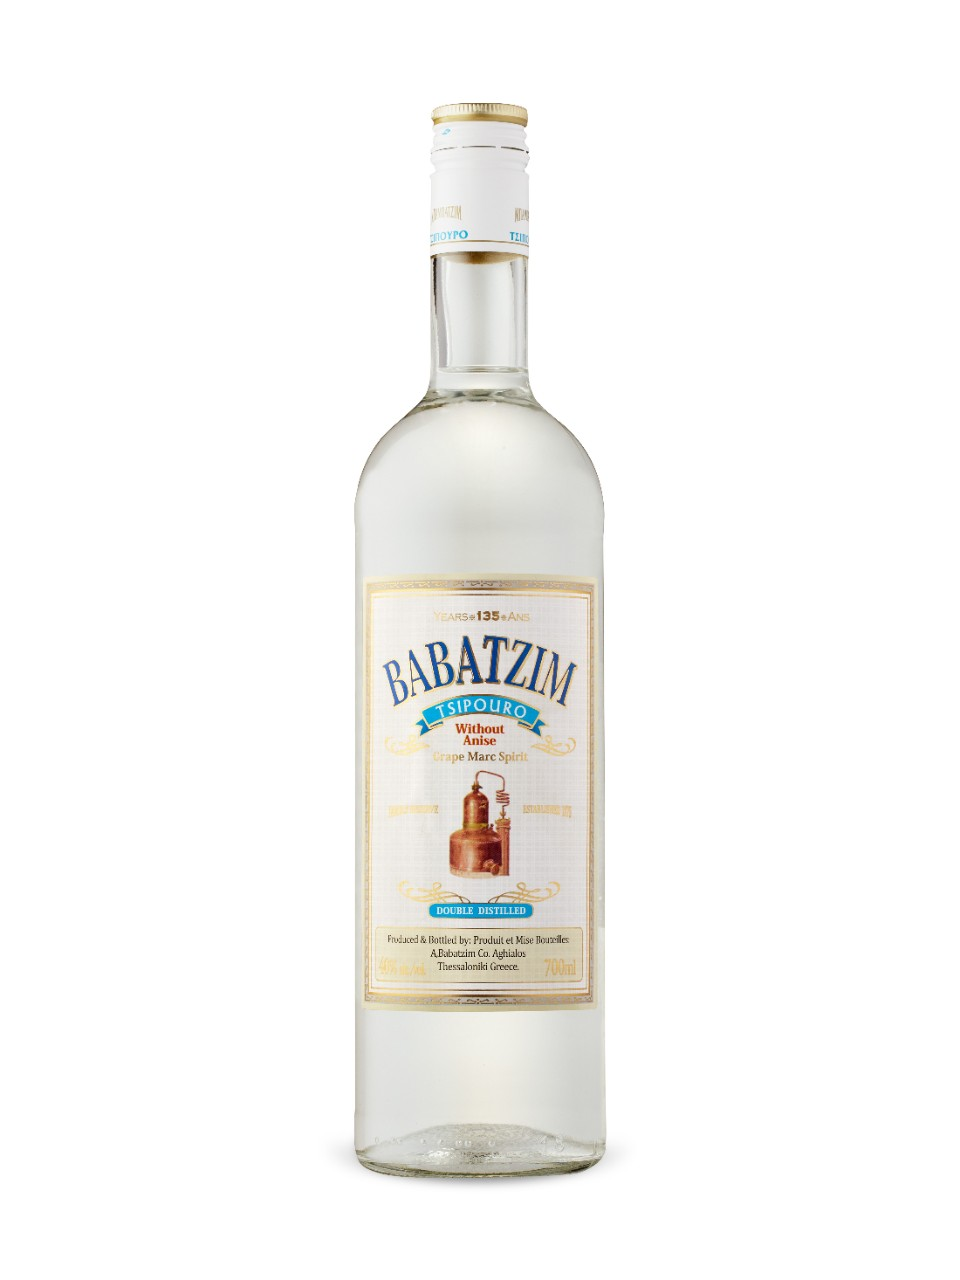 Image for Babatzim Tsipouro Without Anise from LCBO